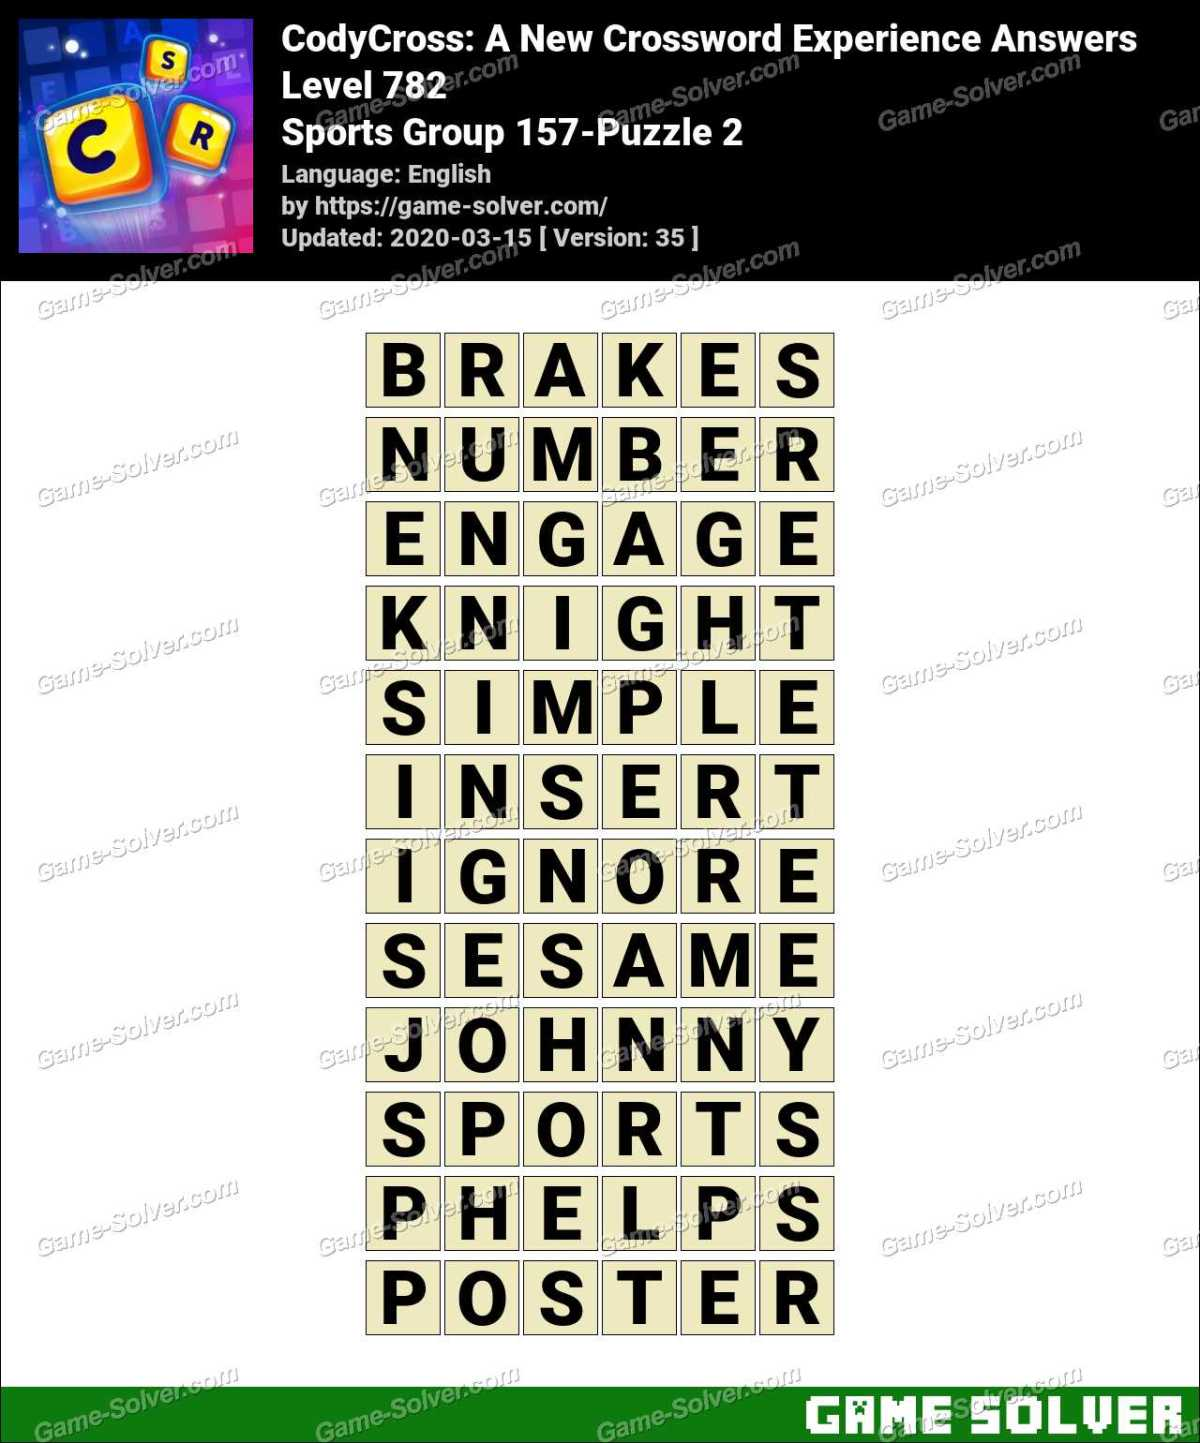 CodyCross Sports Group 157-Puzzle 2 Answers